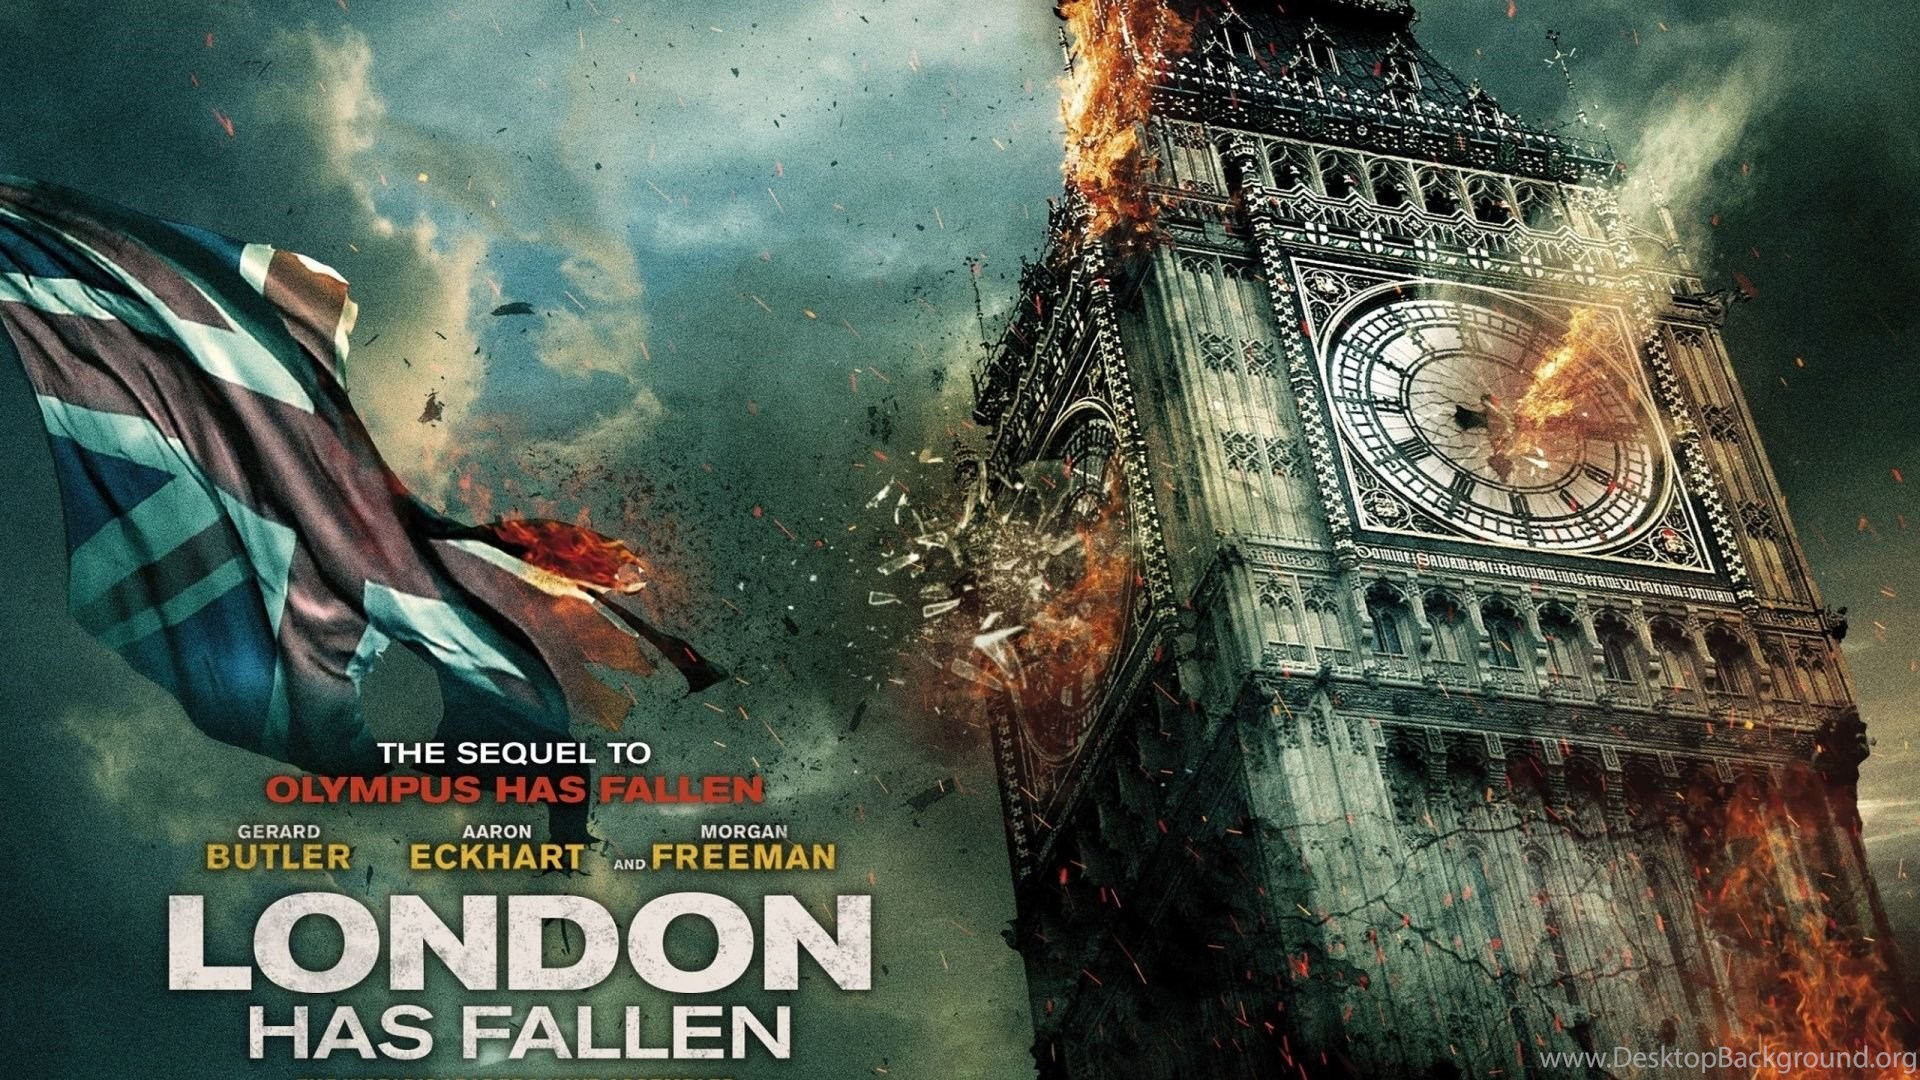 London Has Fallen 2015 Movie Poster Wallpapers Dreamlovewallpapers